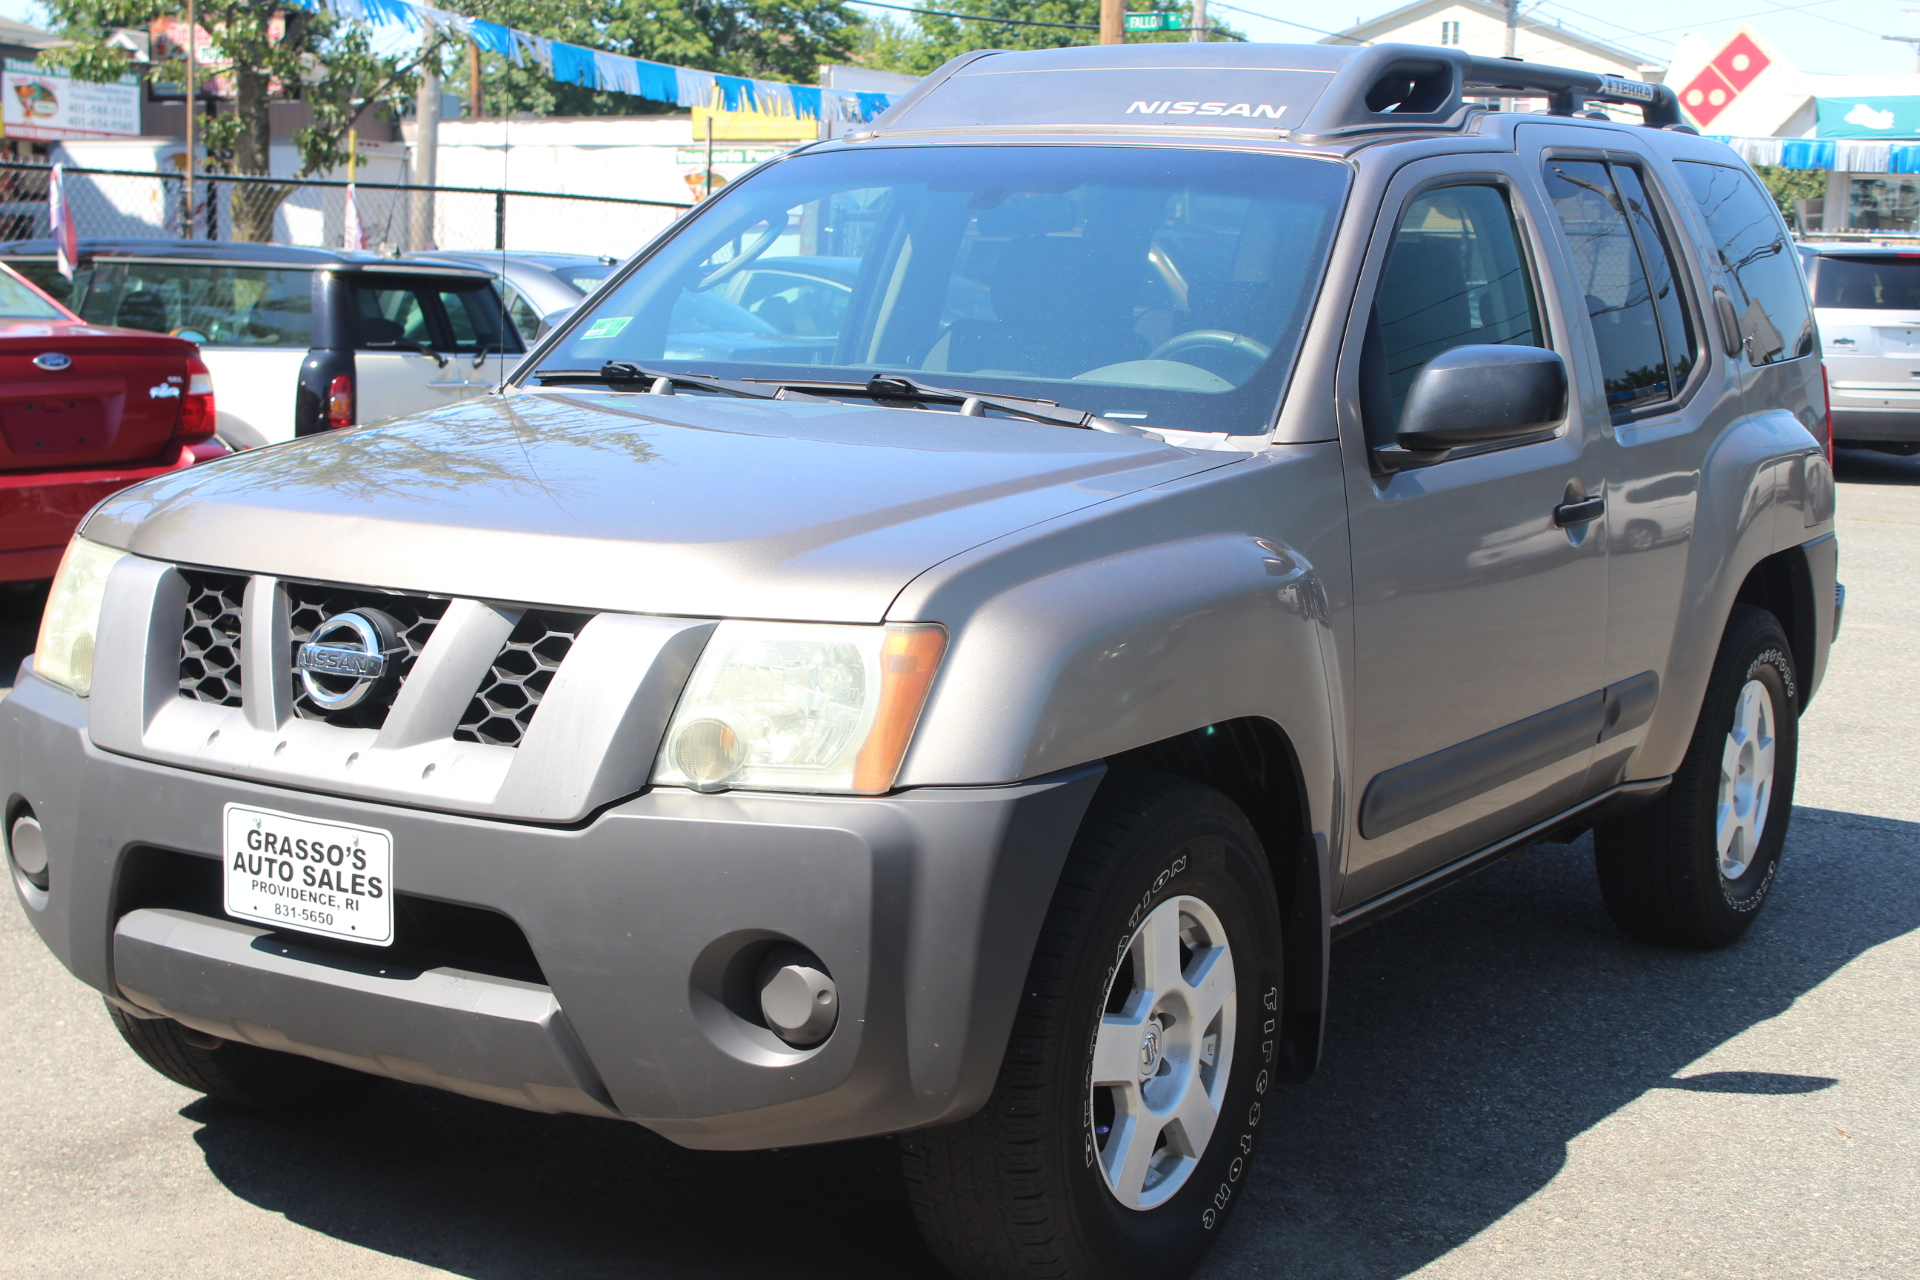 2006 Nissan Xterra 4dr S V6 Auto 2WD NO ACCIDENTS  NON SMOKER  DETAILED SERVICE RECORDS  COMPLE